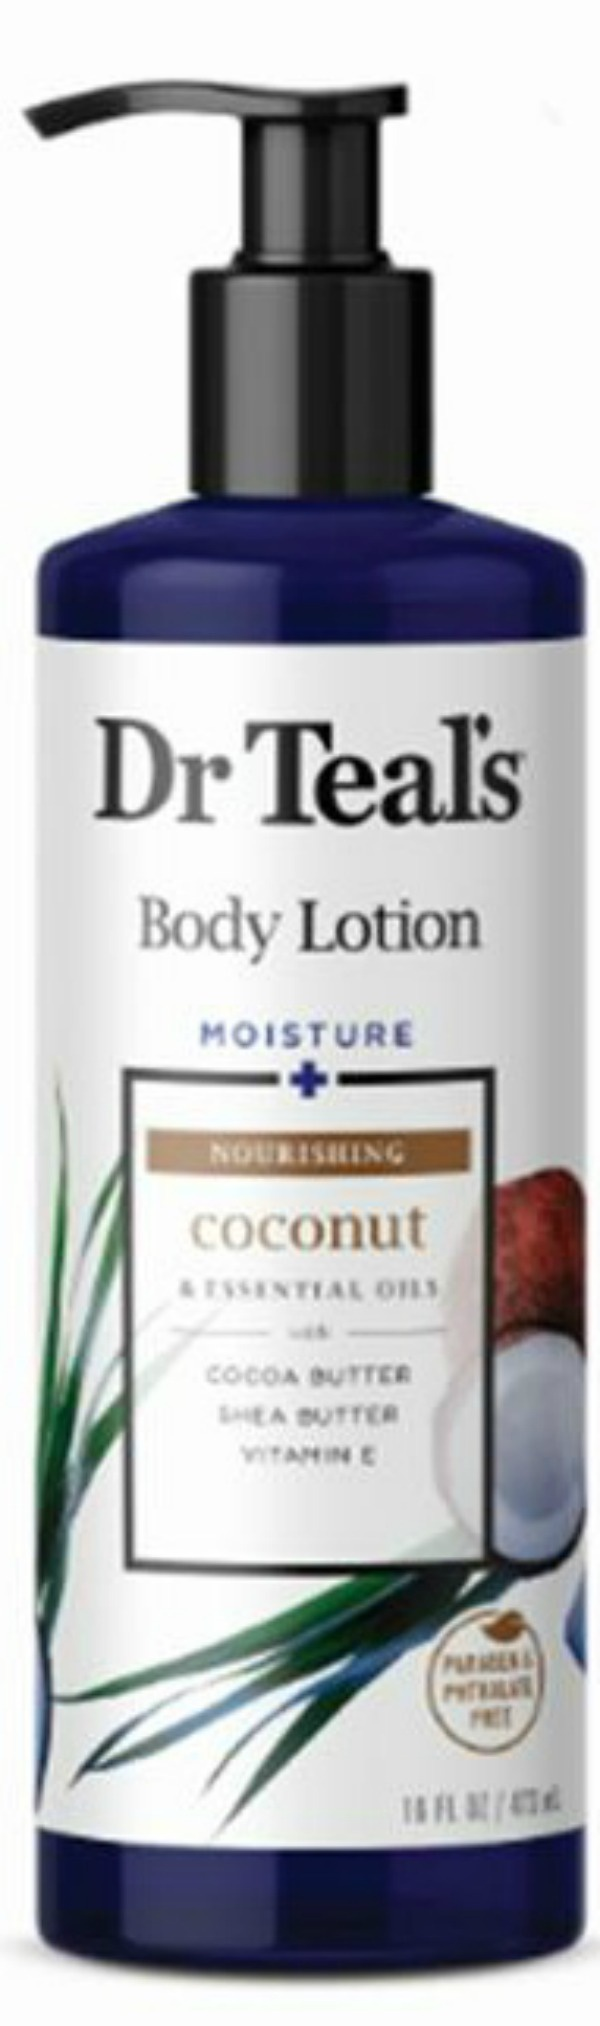 Dr. Teal's Body Lotion